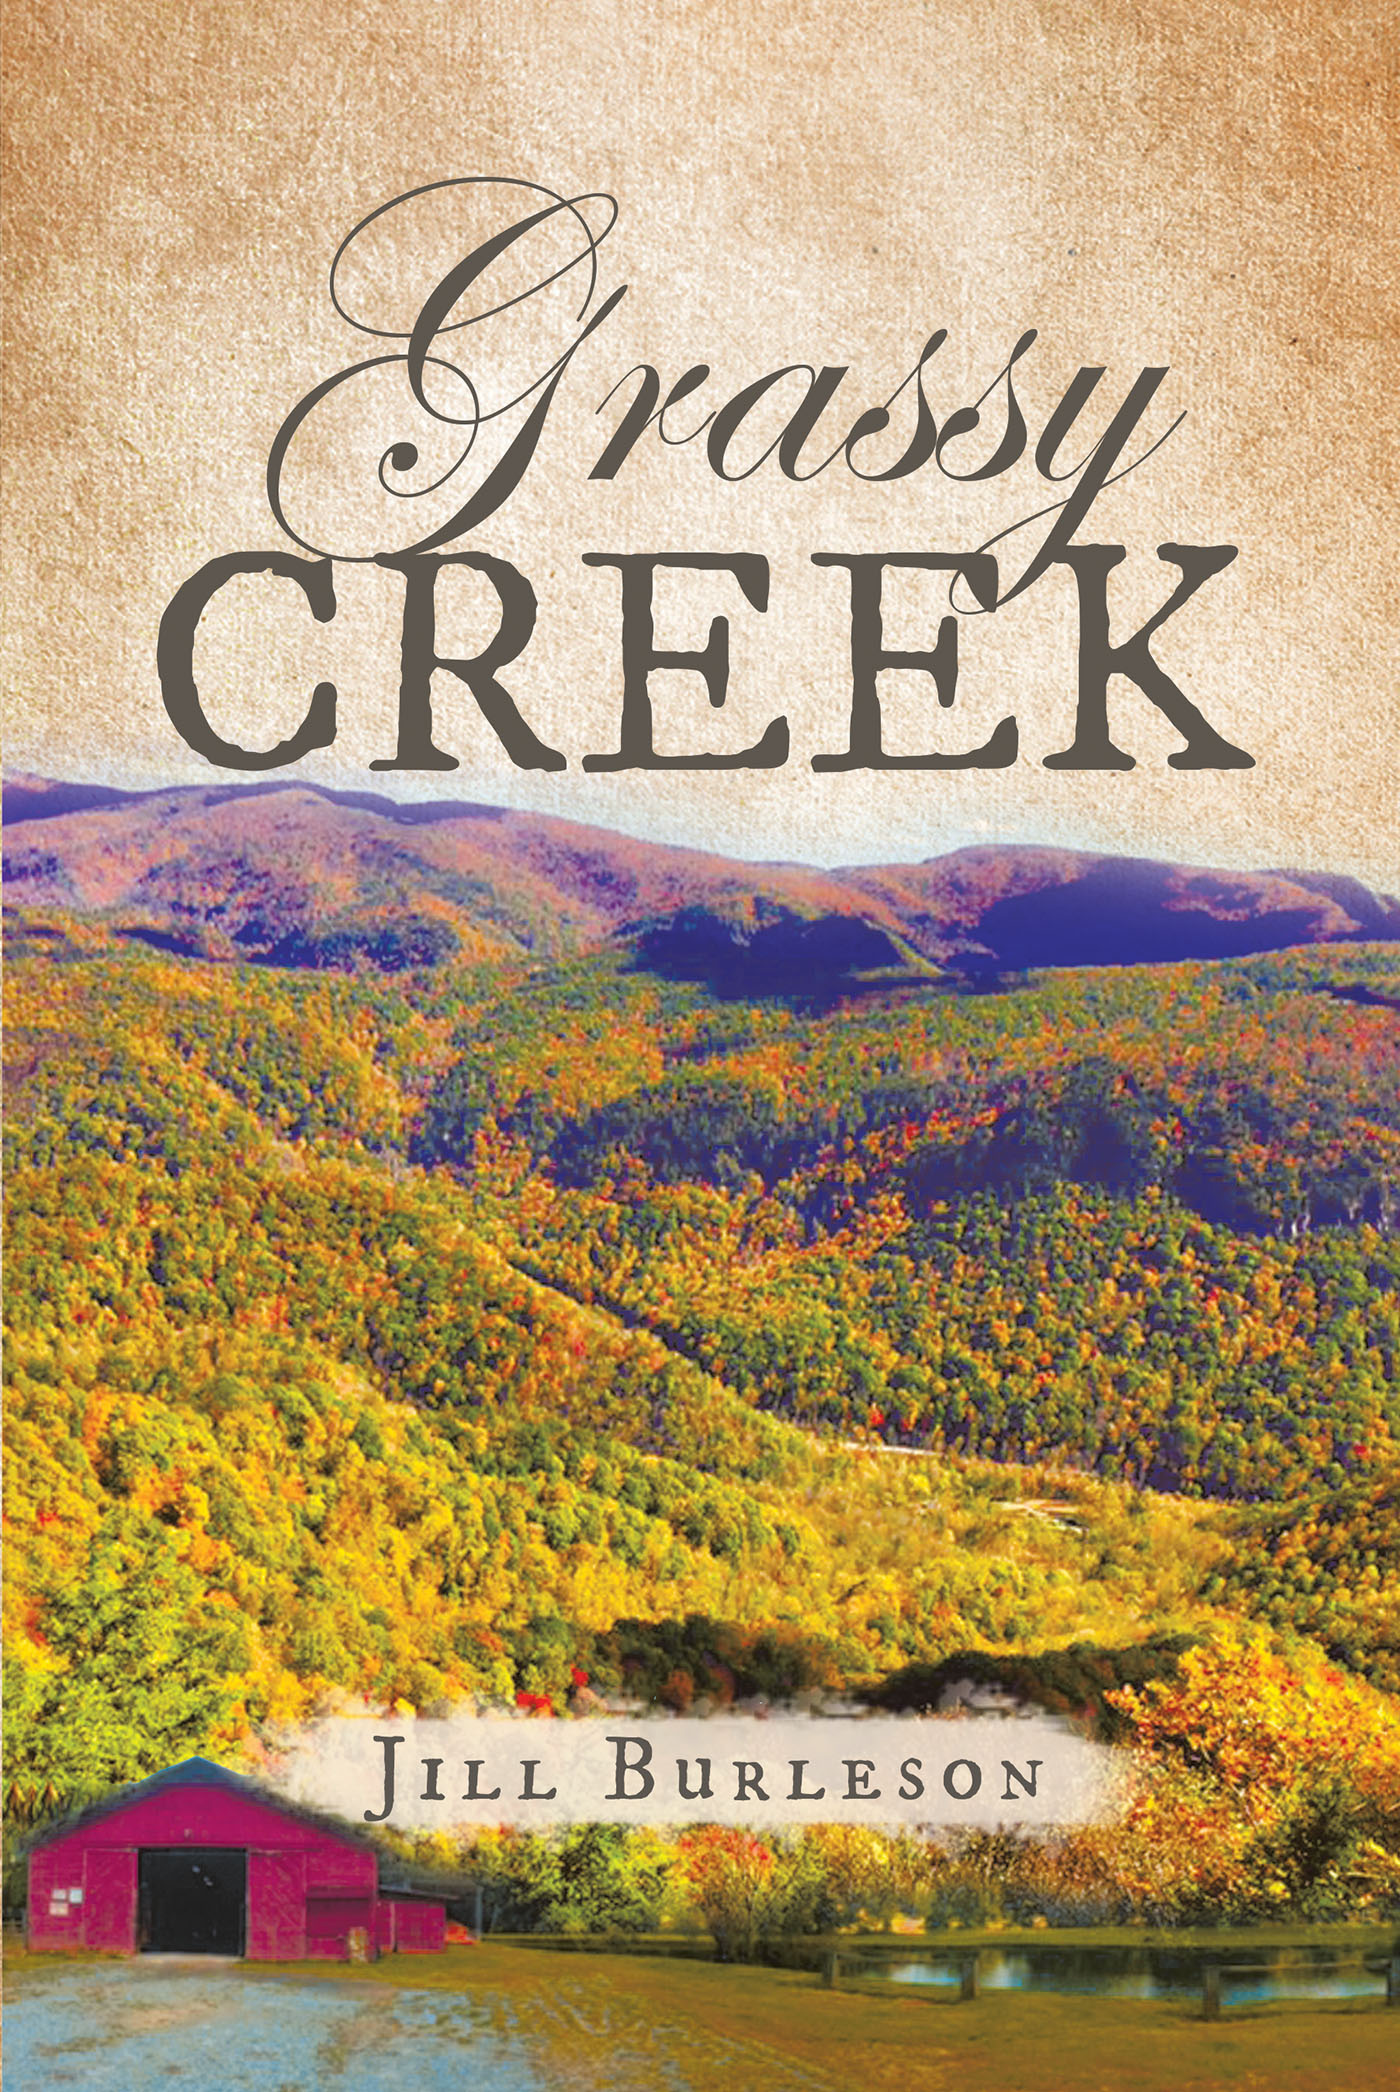 grassy creek single guys Real estate and homes for sale in grassy creek, nc on oodle classifieds join millions of people using oodle to find local real estate listings, homes for sales, condos for sale and.